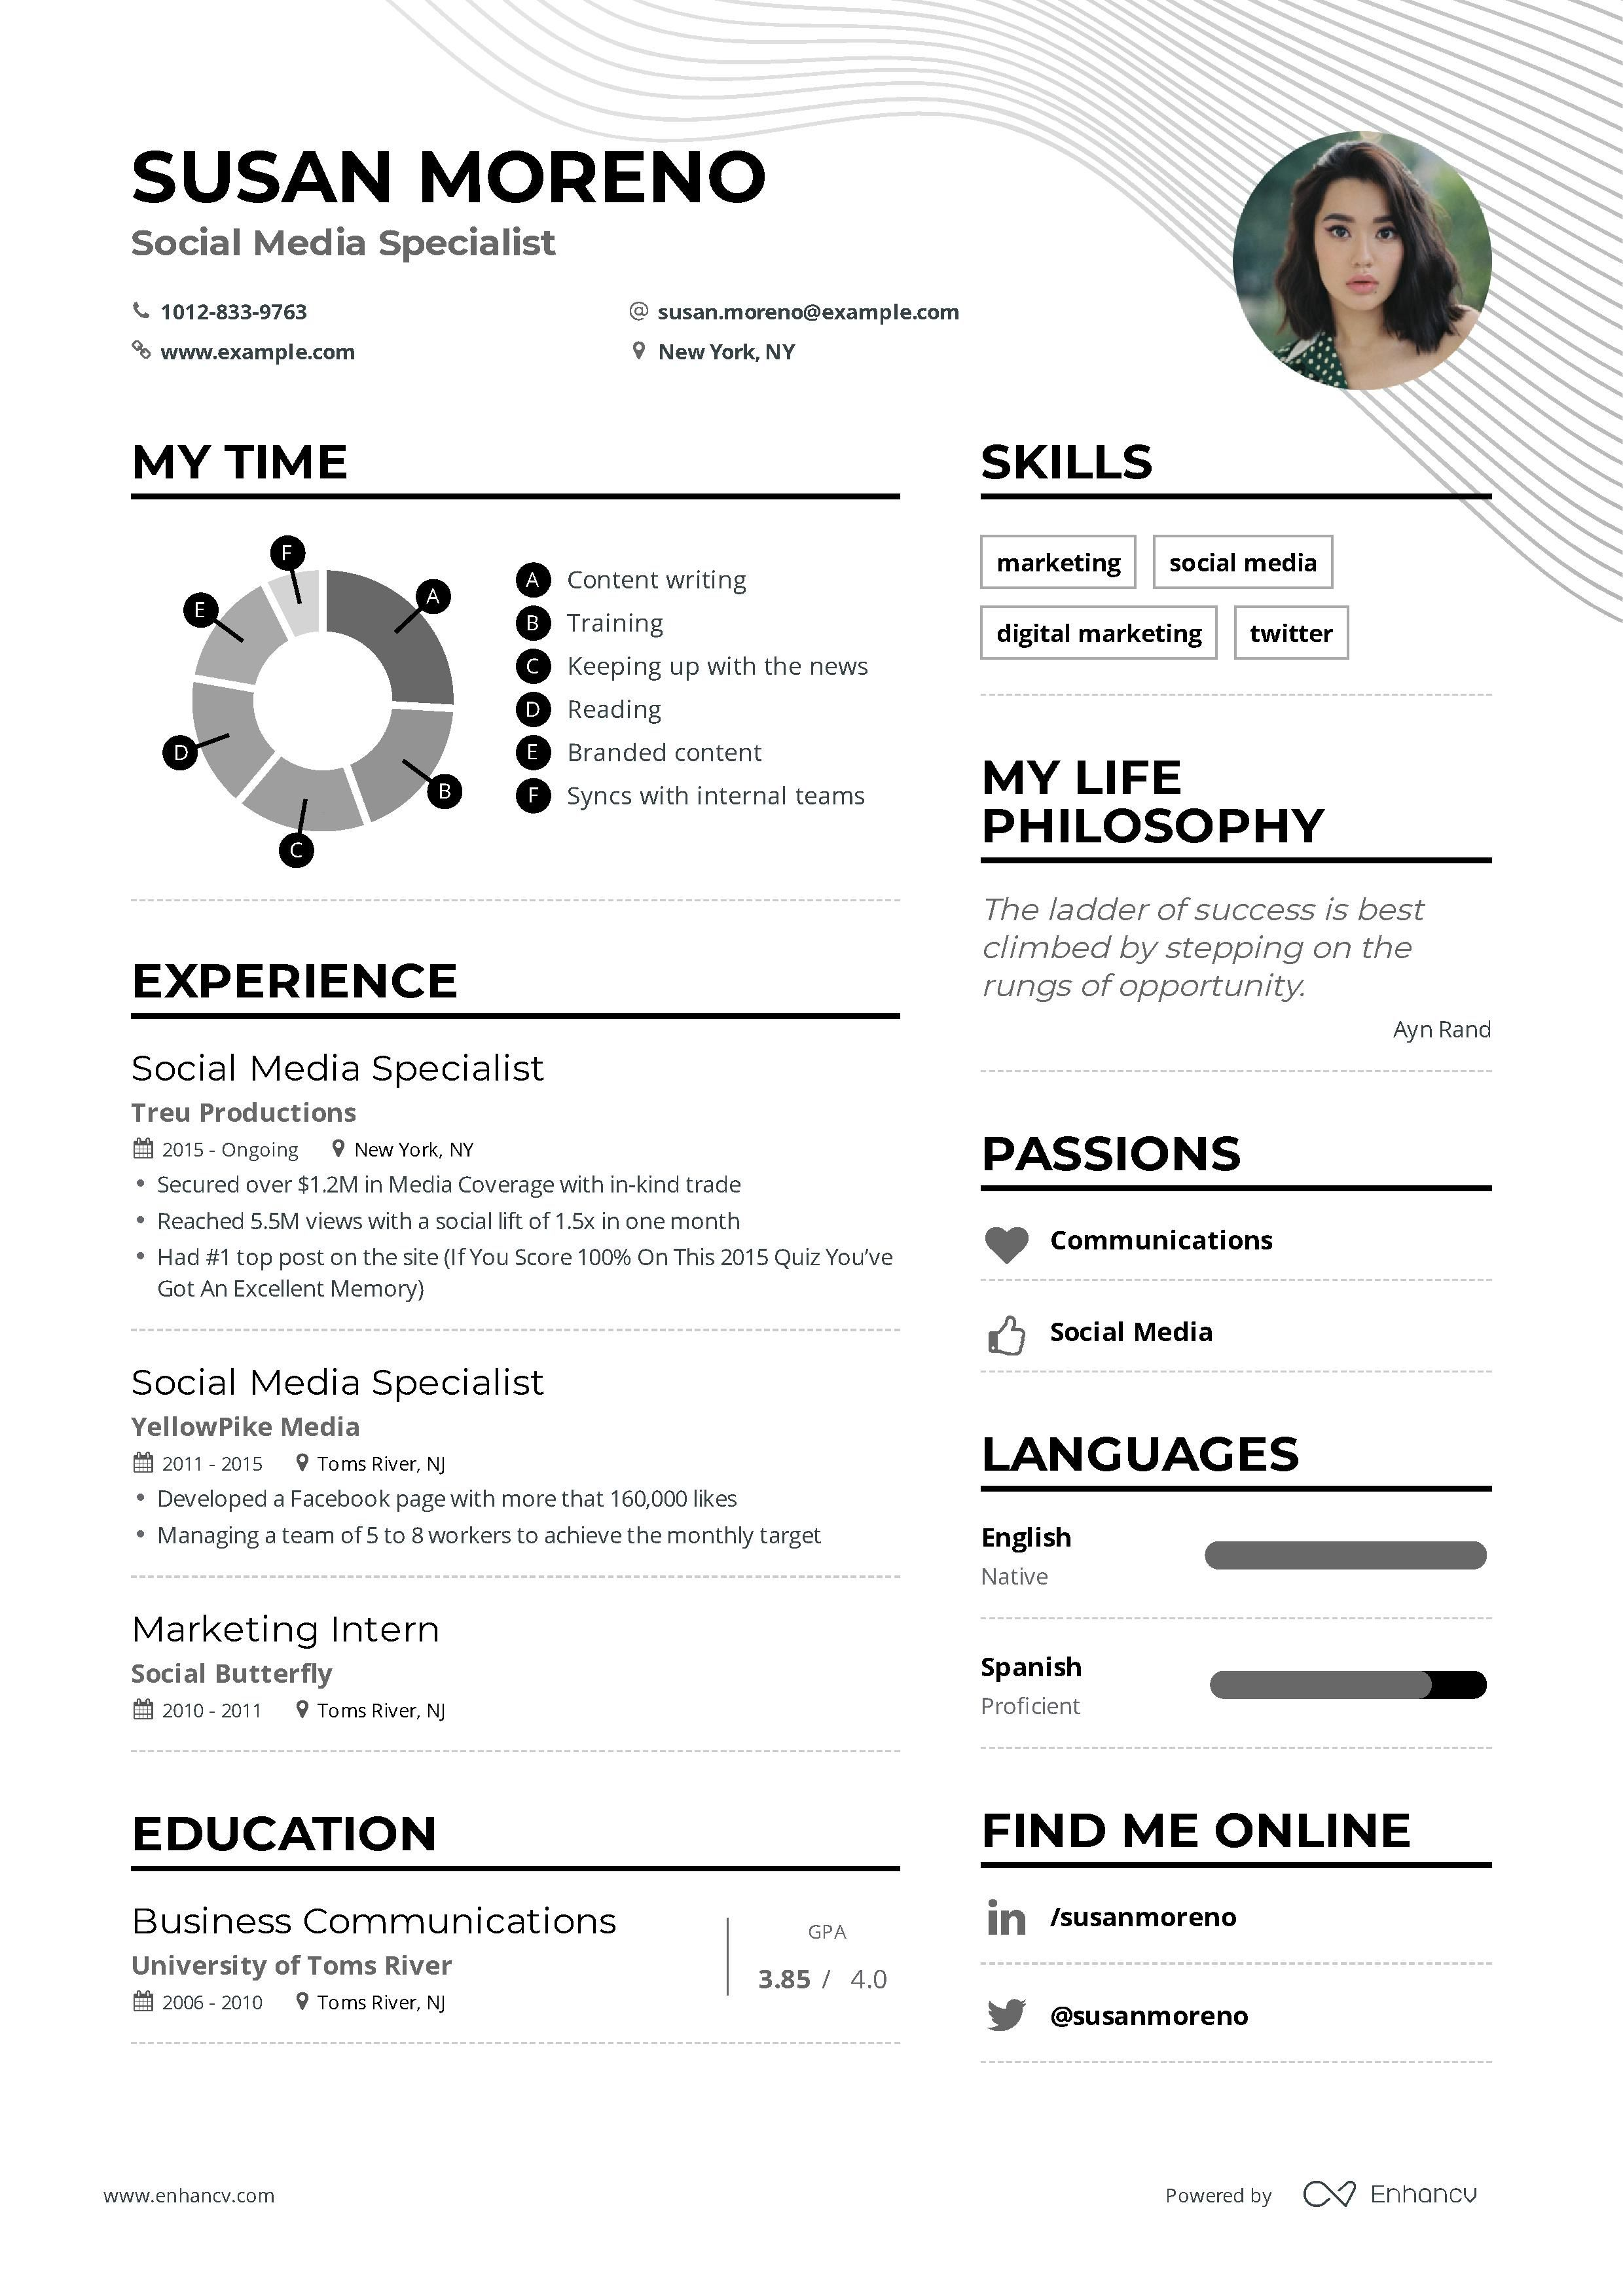 Social Media Specialist Resume Example And Guide For 2019 Marketing Resume Resume Examples Teacher Resume Examples